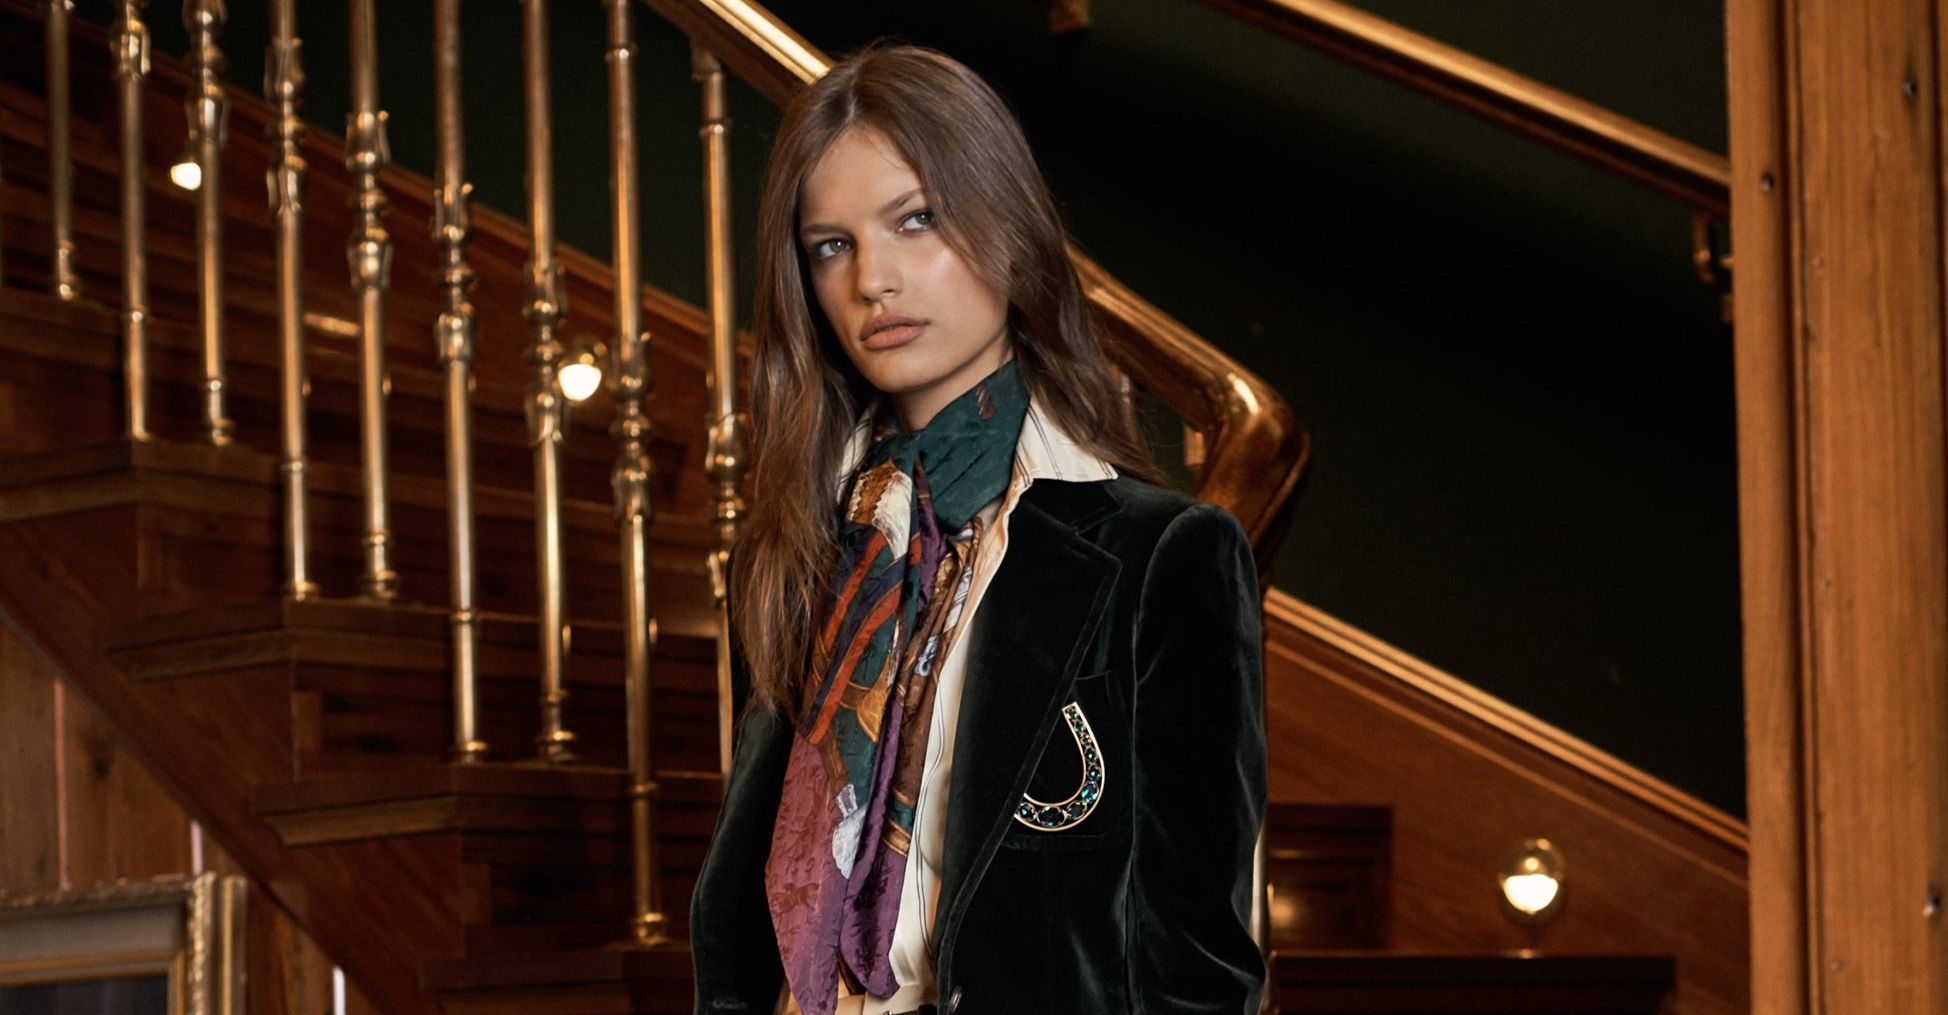 Ralph Lauren Selects Croatian Teen to be Face of New Collection